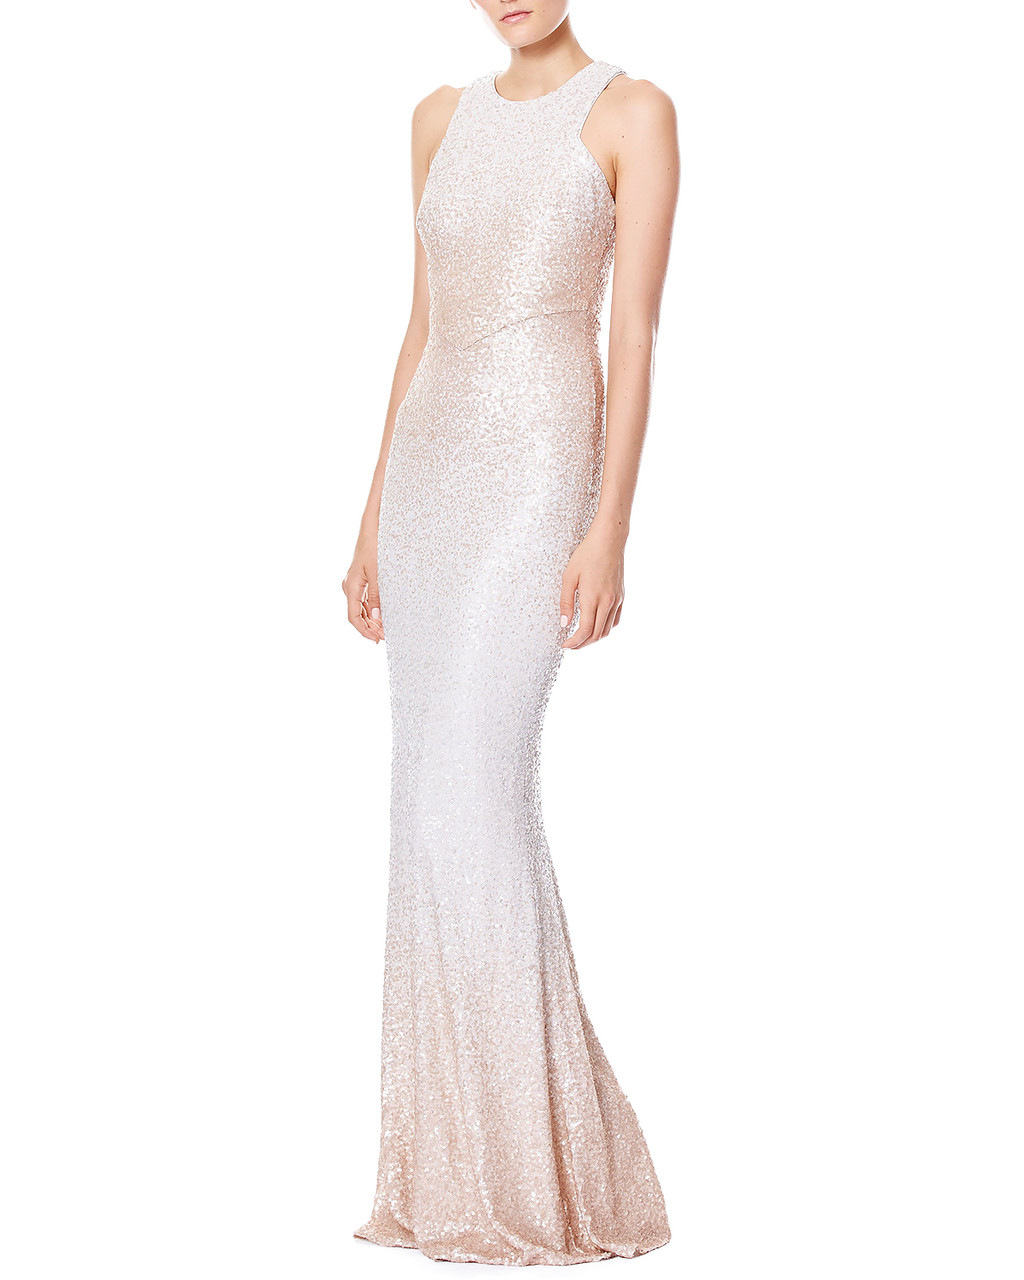 22baaf0867e57 Ombre Sequined Evening Gown